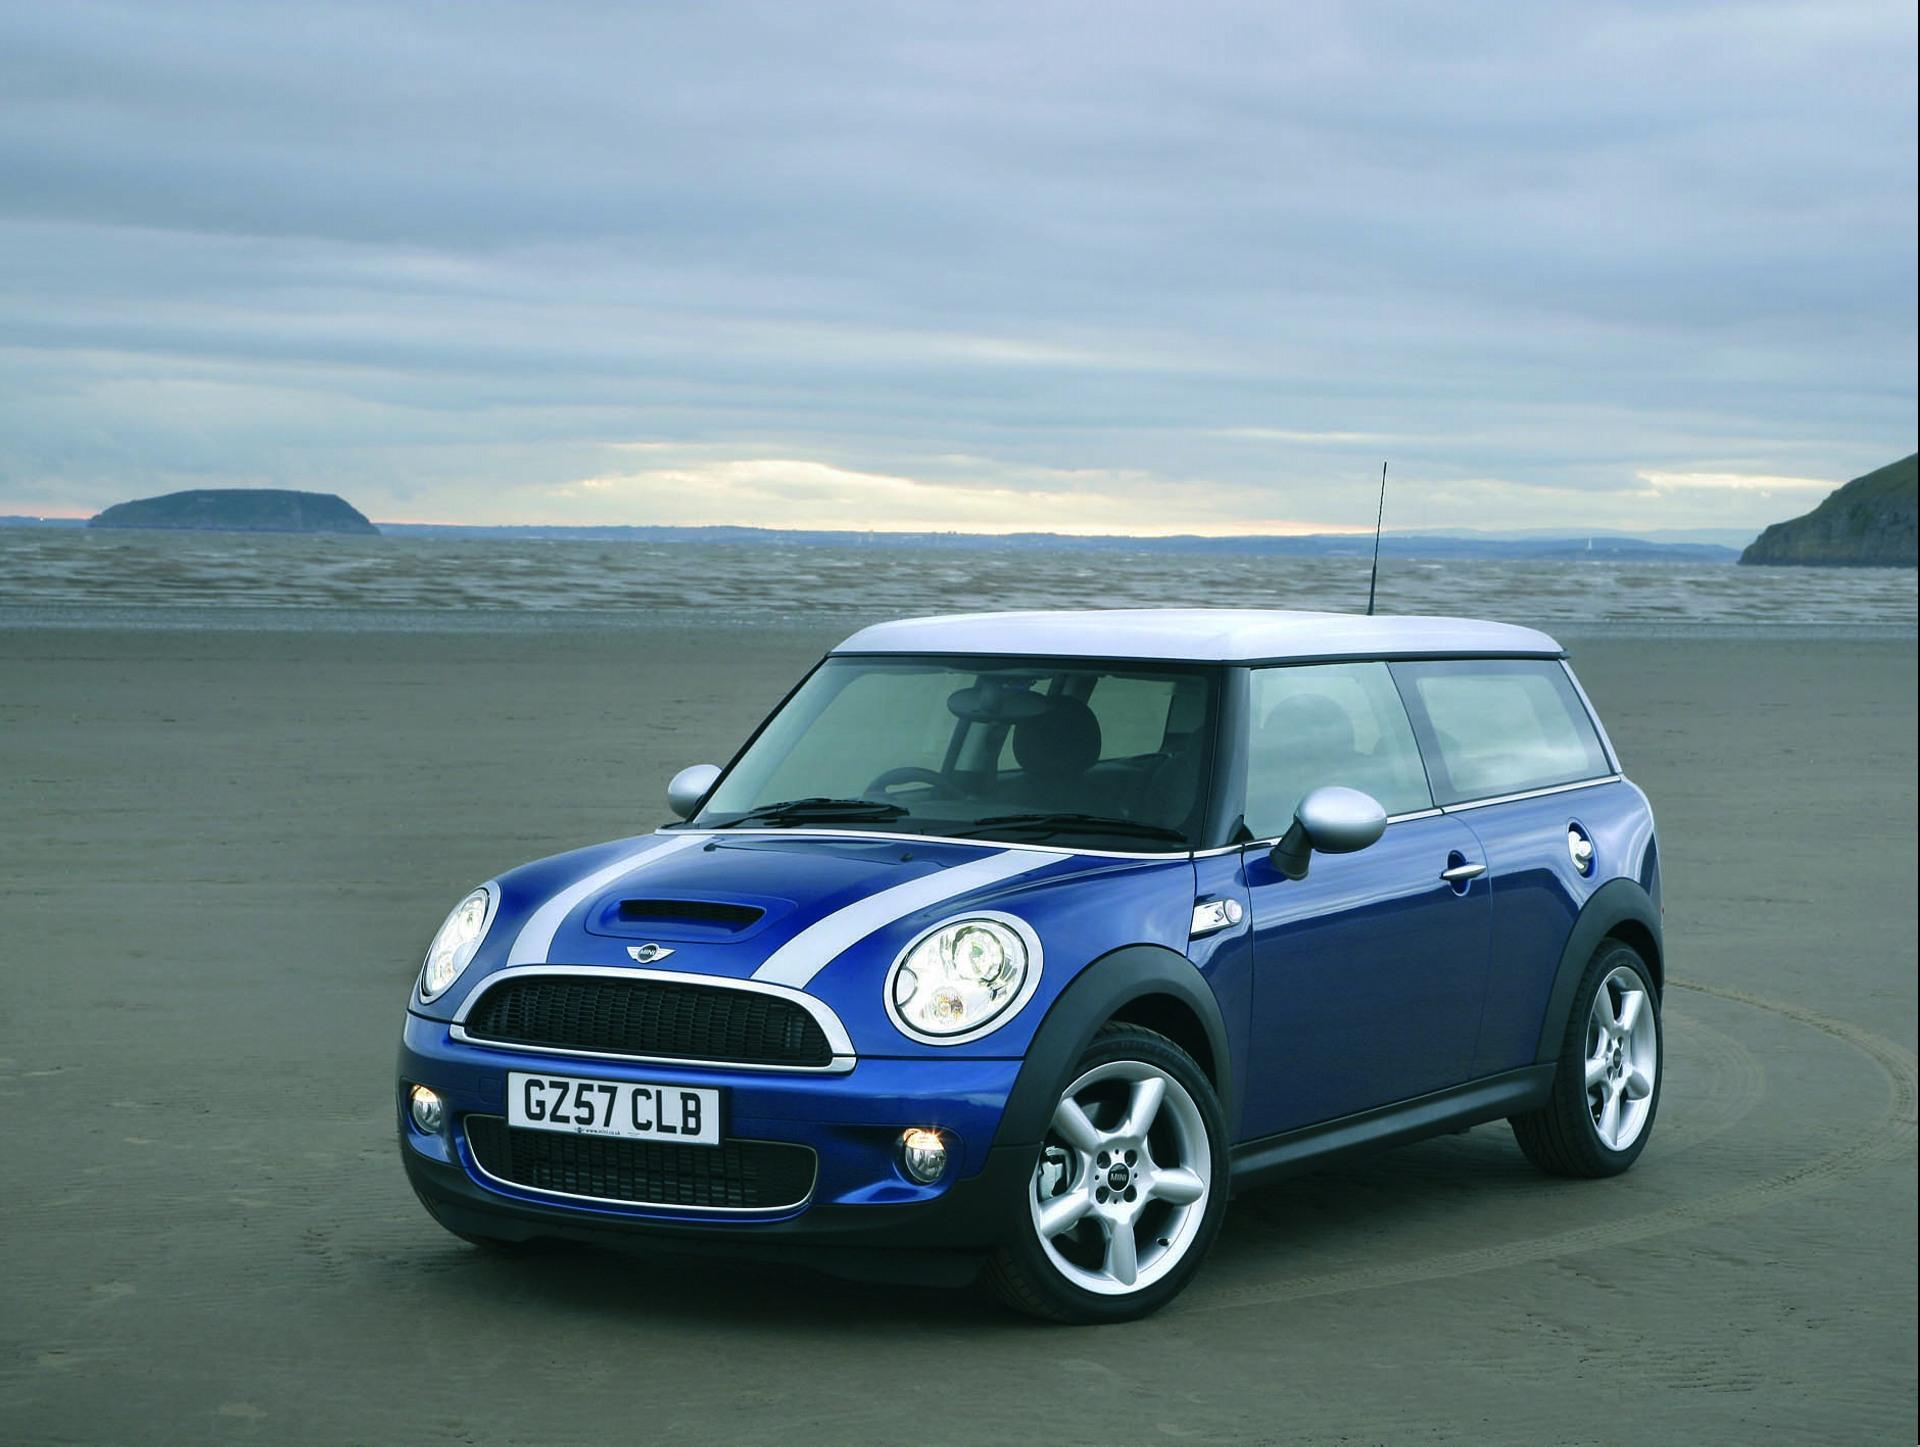 2009 mini cooper clubman blue 200 interior and exterior images. Black Bedroom Furniture Sets. Home Design Ideas